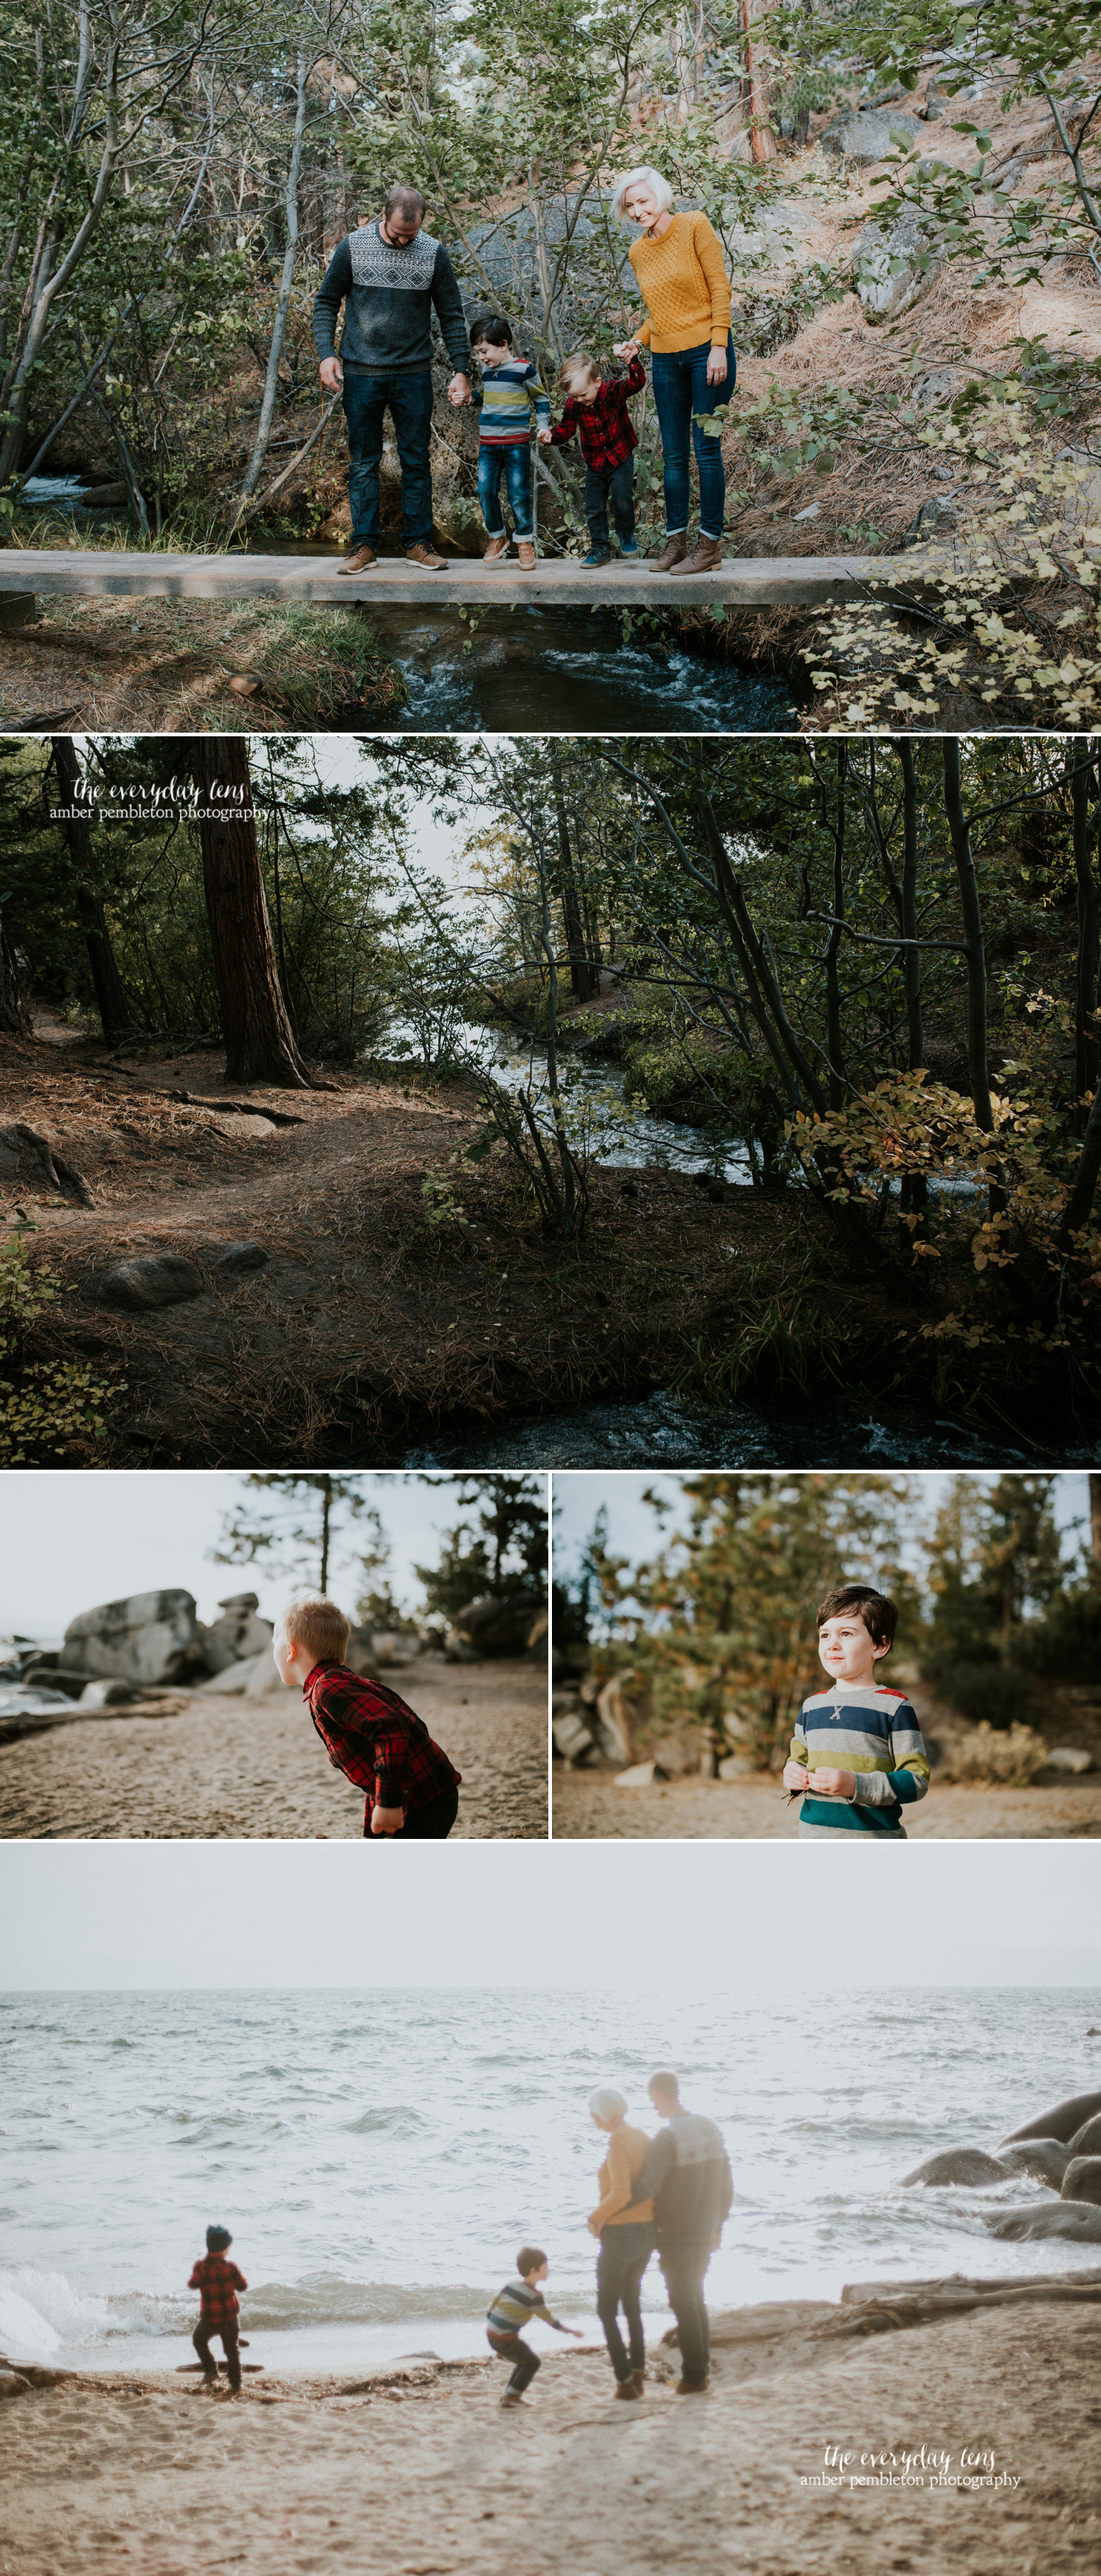 tahoe-fall-family-photo-session 1.jpg